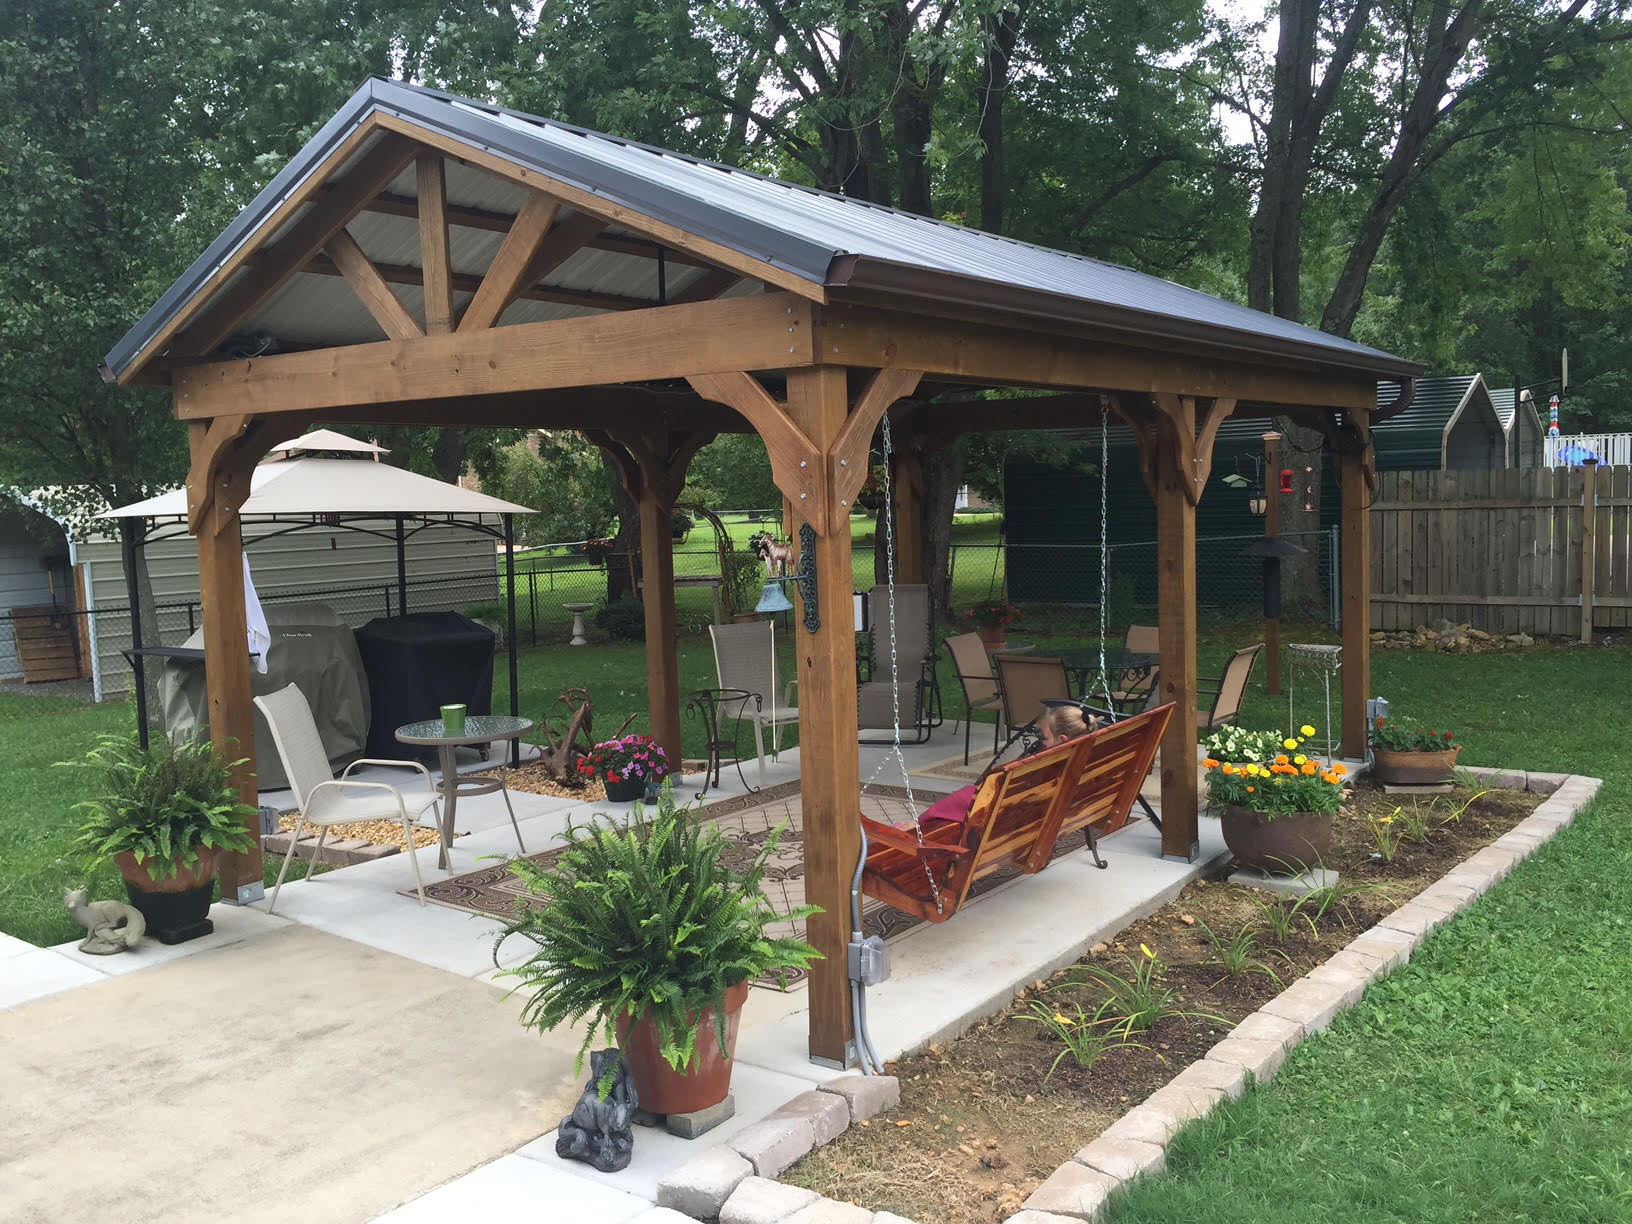 32 To 40 Wide Metal Carports Metal Garages together with Metal Roll Up Garage Door  ponents likewise High Quality Timber Buildings Garden Sheds Play Houses And Garages as well Carport Pavilion Pergola together with Wooden Structures. on large carport with storage